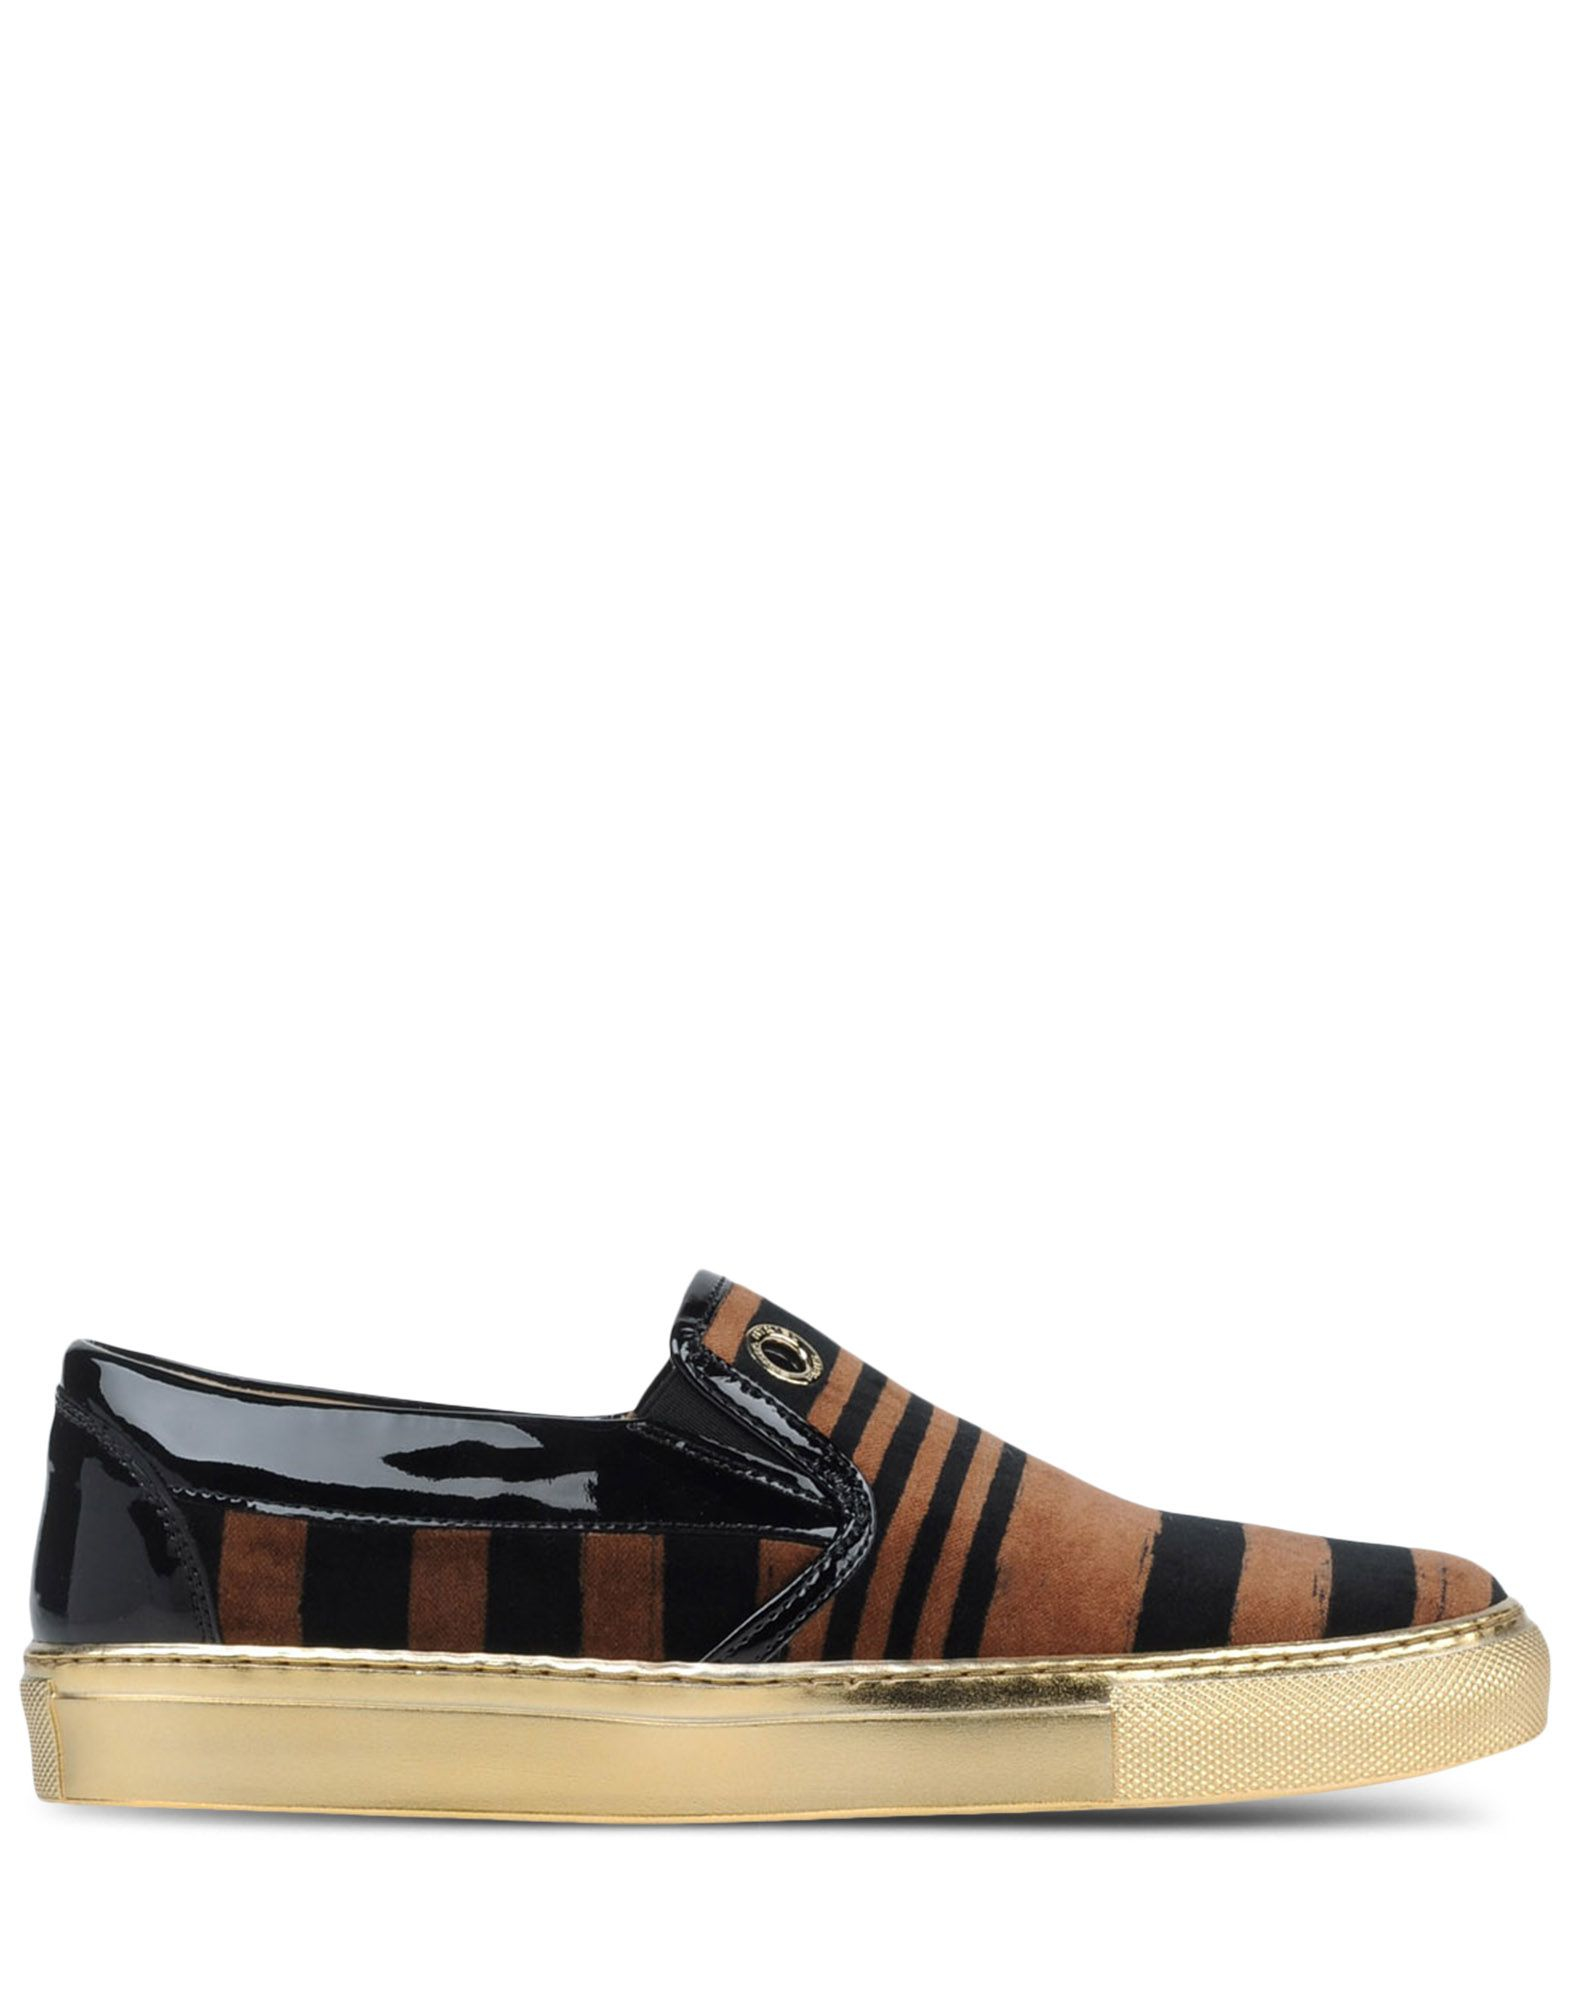 Sonia rykiel striped velvet low top sneakers in brown lyst - Sonia rykiel parure de lit ...